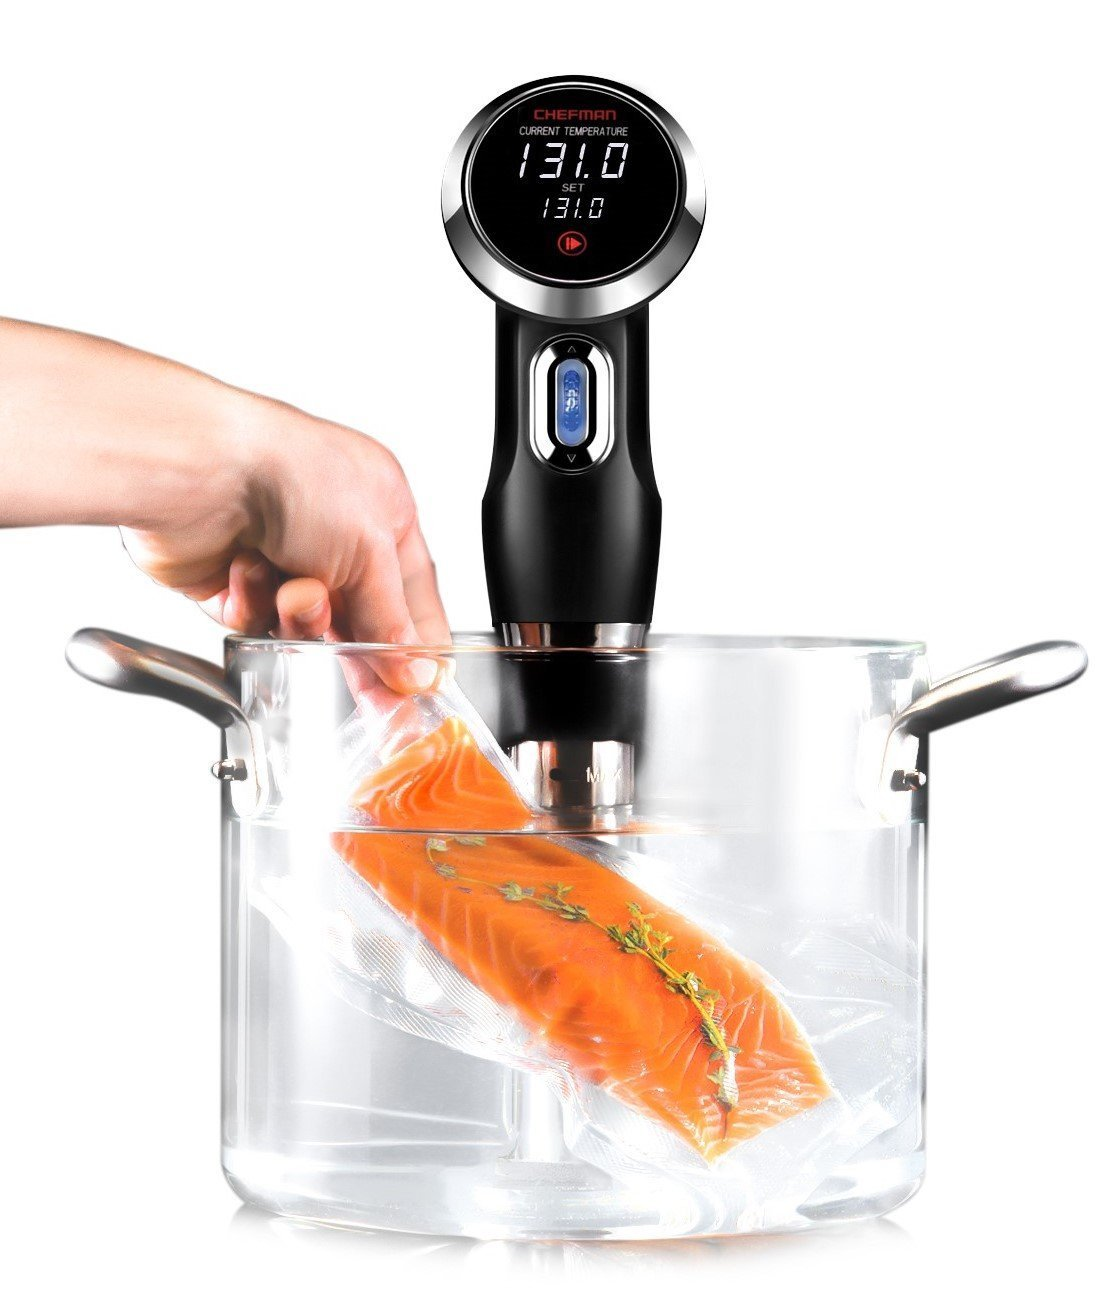 Chefman Sous Vide Immersion Circulator w/Precise Temperature, Programmable Digital Touch Screen Display and Easy to Use Controls, Black